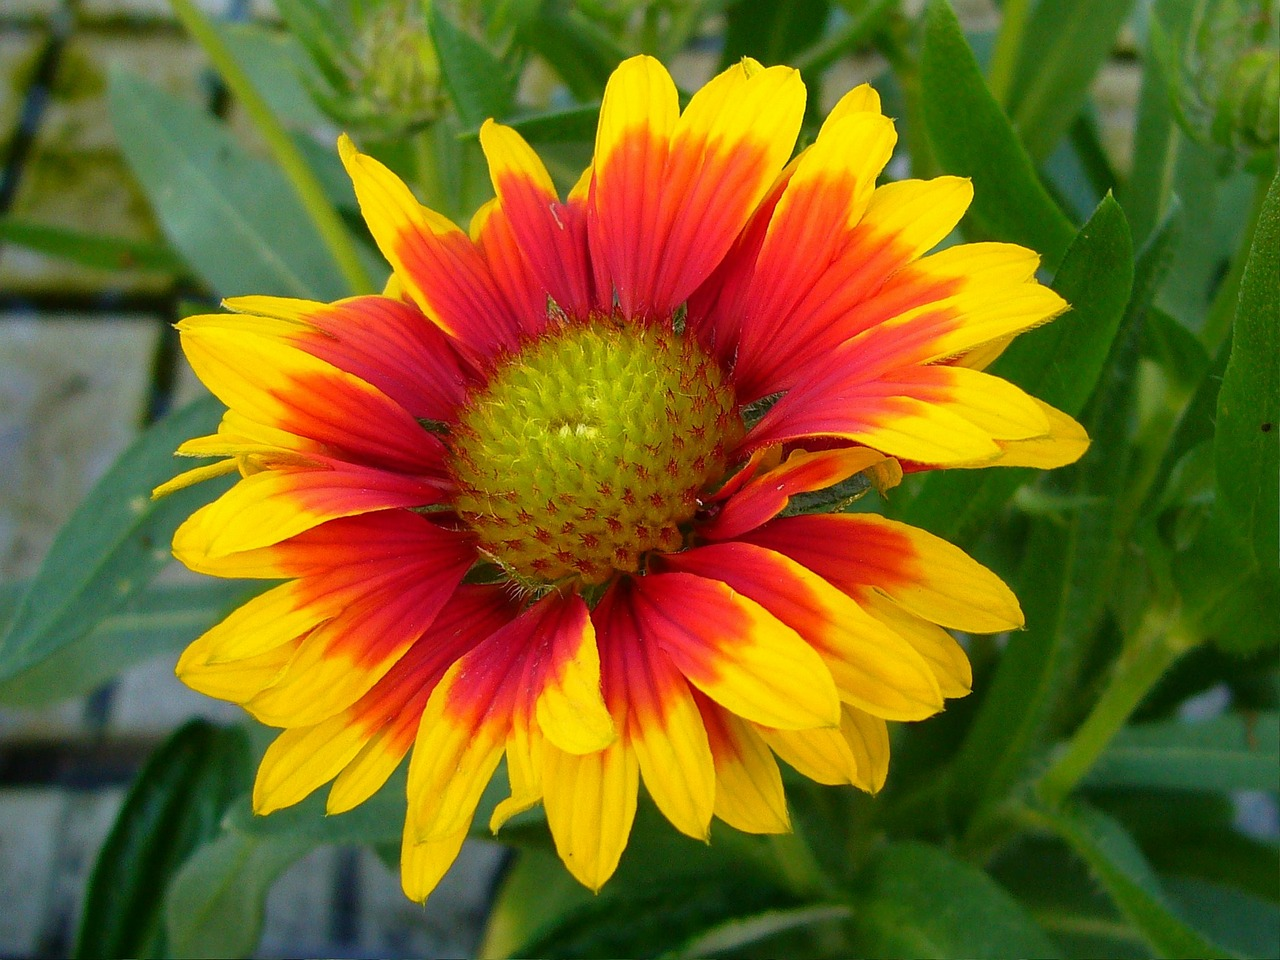 Gaillardiablanket Flowersperennialflowerbloom Free Photo From